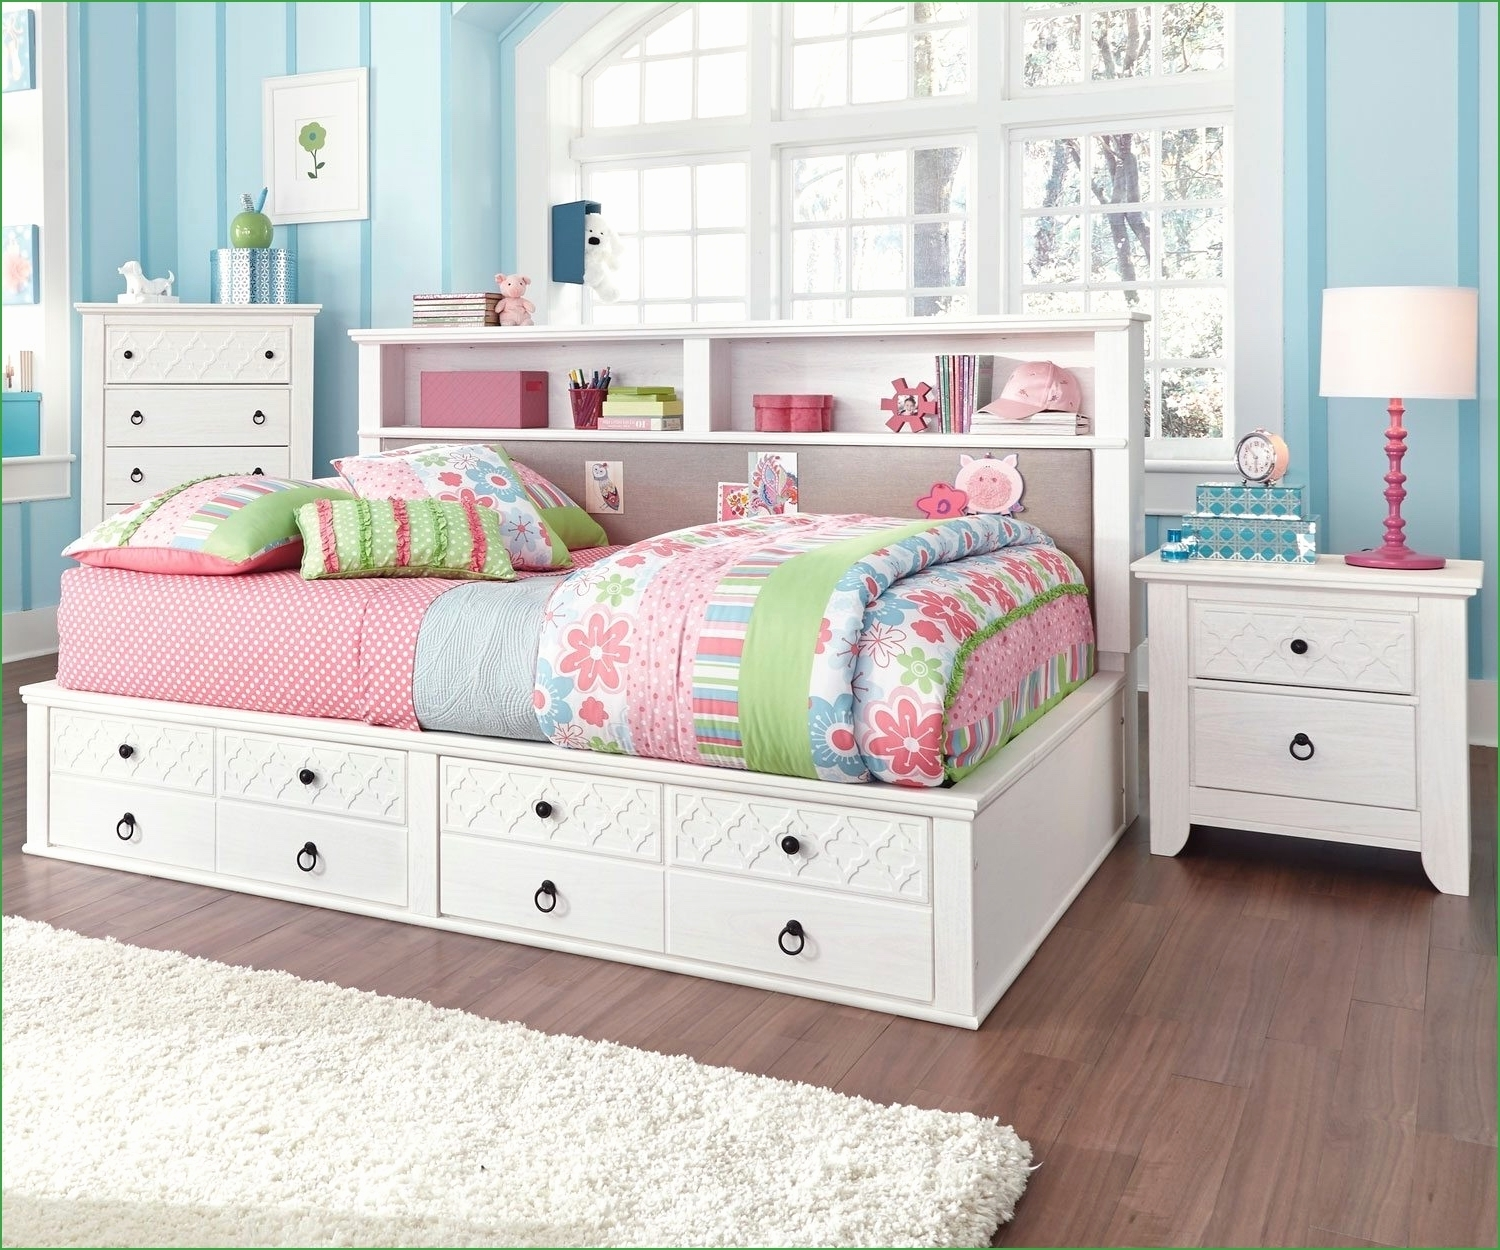 50 Elegant Full Size Storage Bed With Bookcase Headboard – For Best And Newest Full Size Storage Bed With Bookcases Headboard (View 10 of 15)